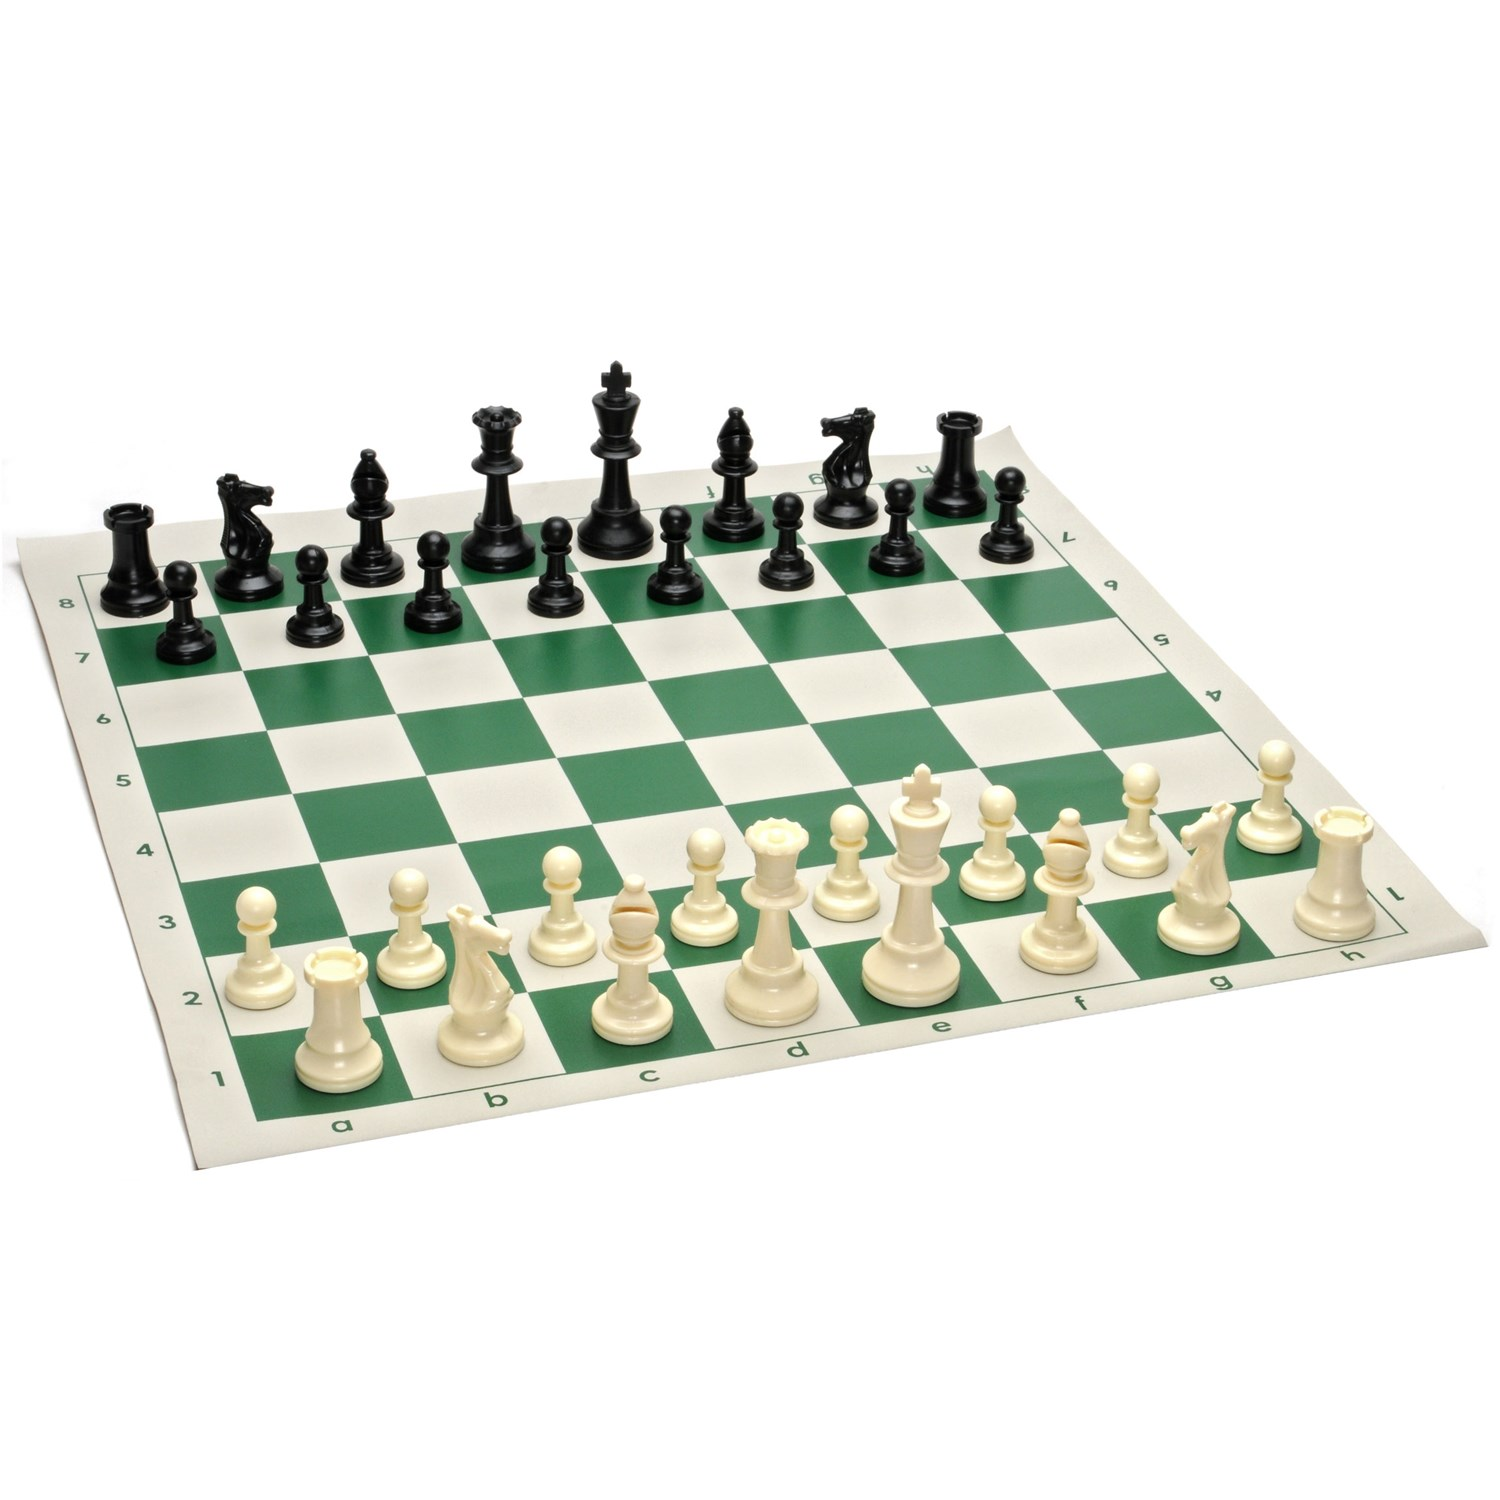 Tournament chess pack staunton pieces with green board - Inexpensive chess sets ...